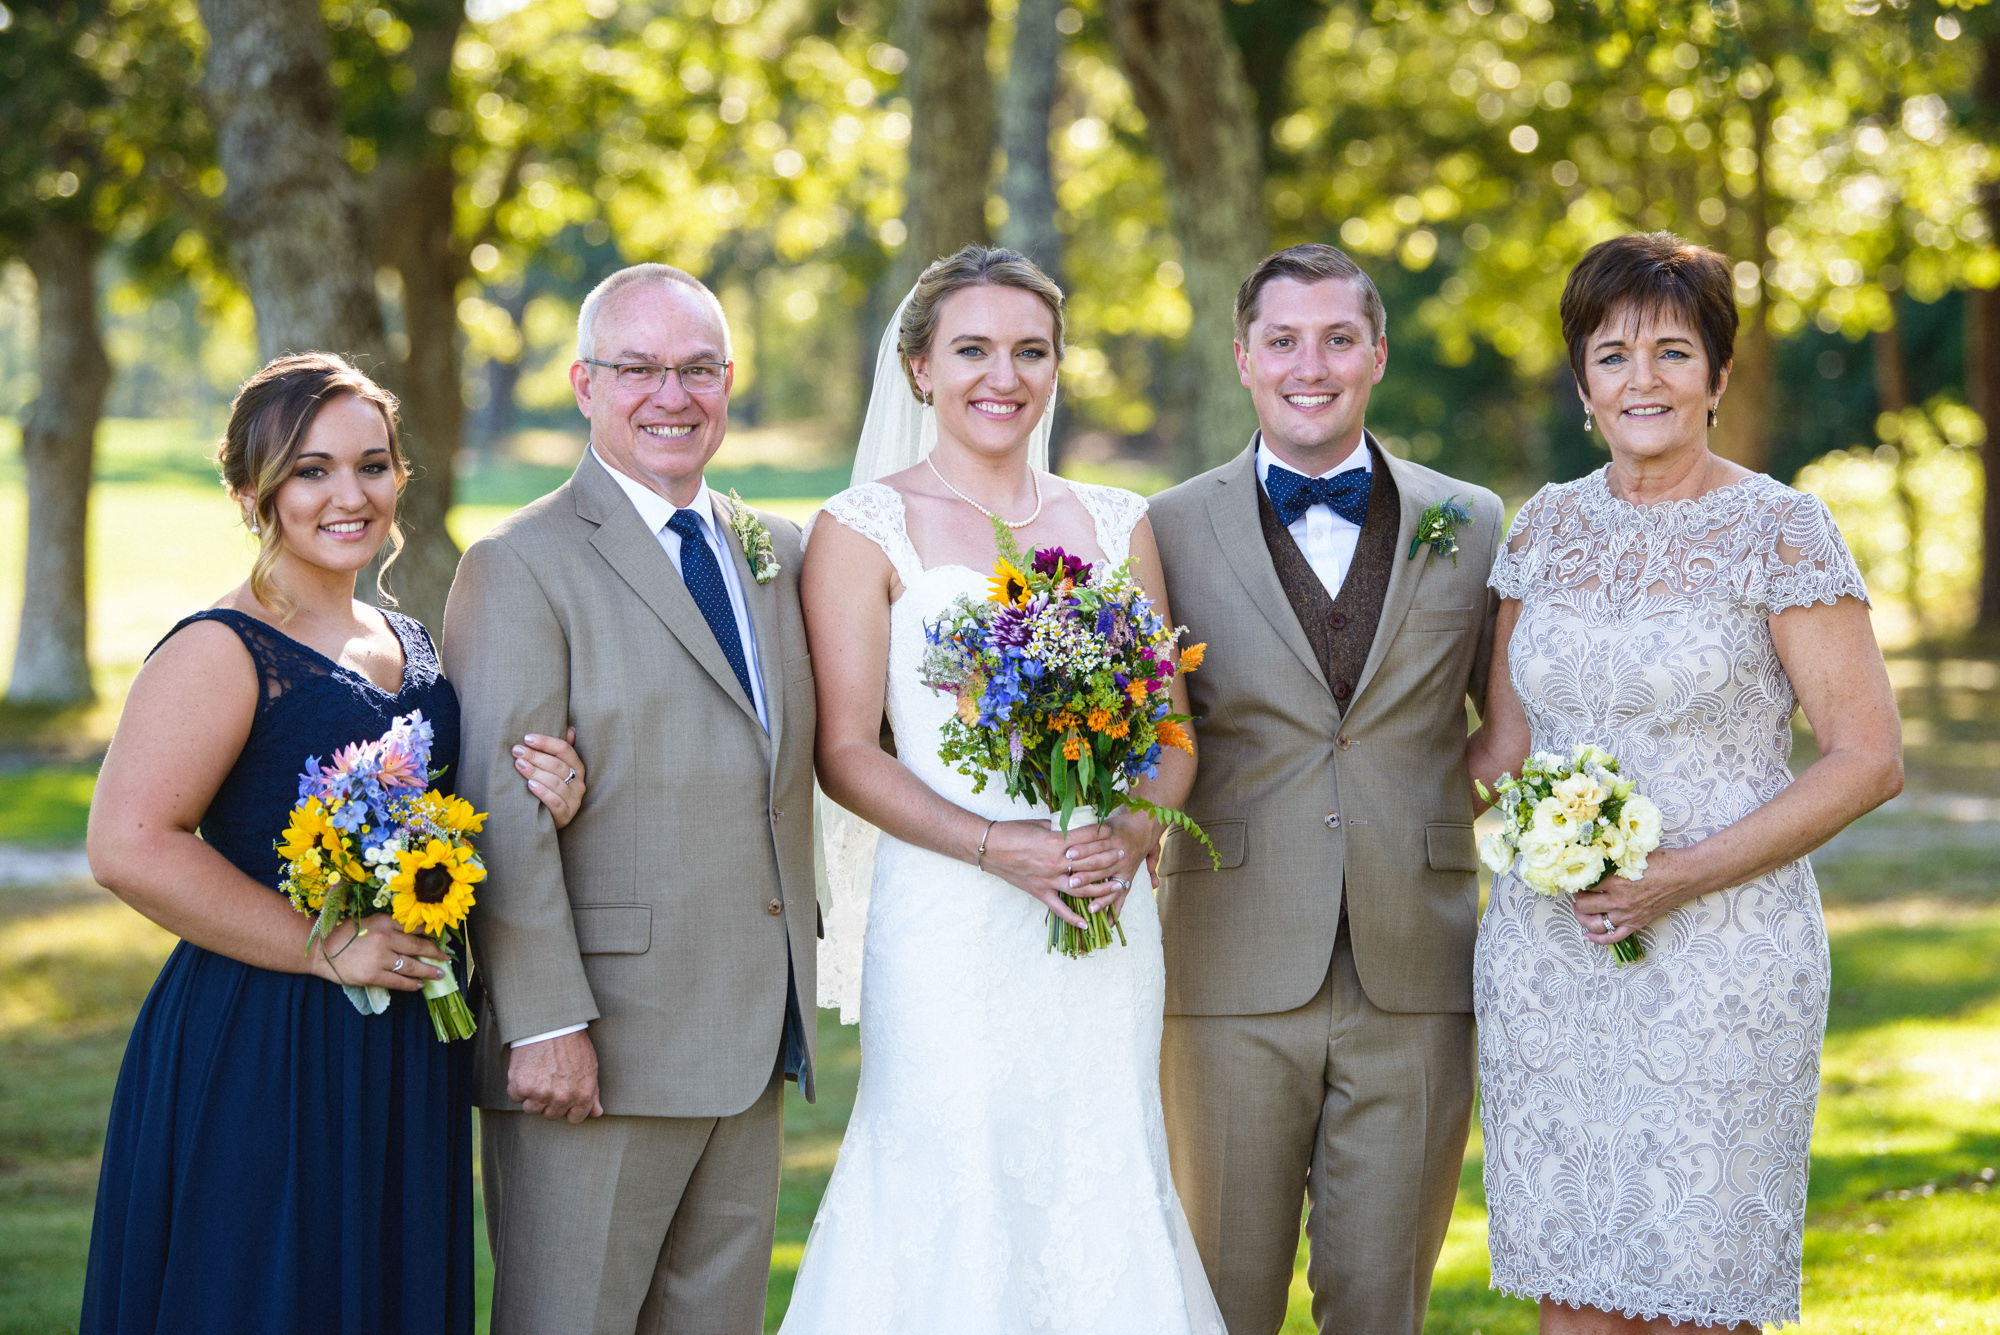 Formal family wedding photos on the grounds of Farm Neck Golf Club  photo by David Welch Photography